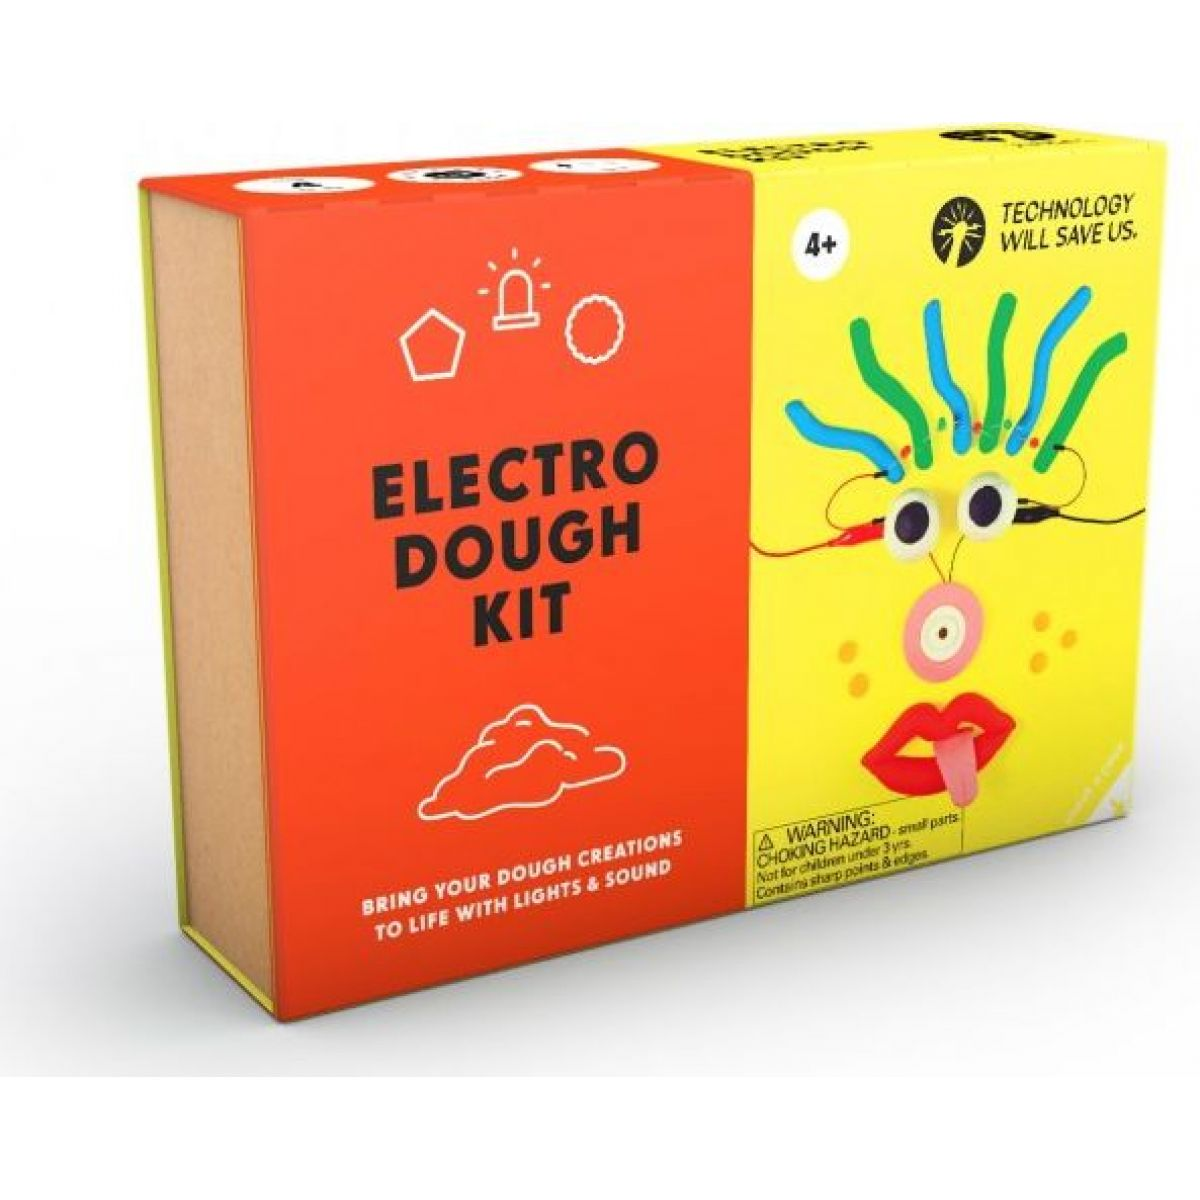 Tech Will Save Us Electro Dough Kit Dual Language